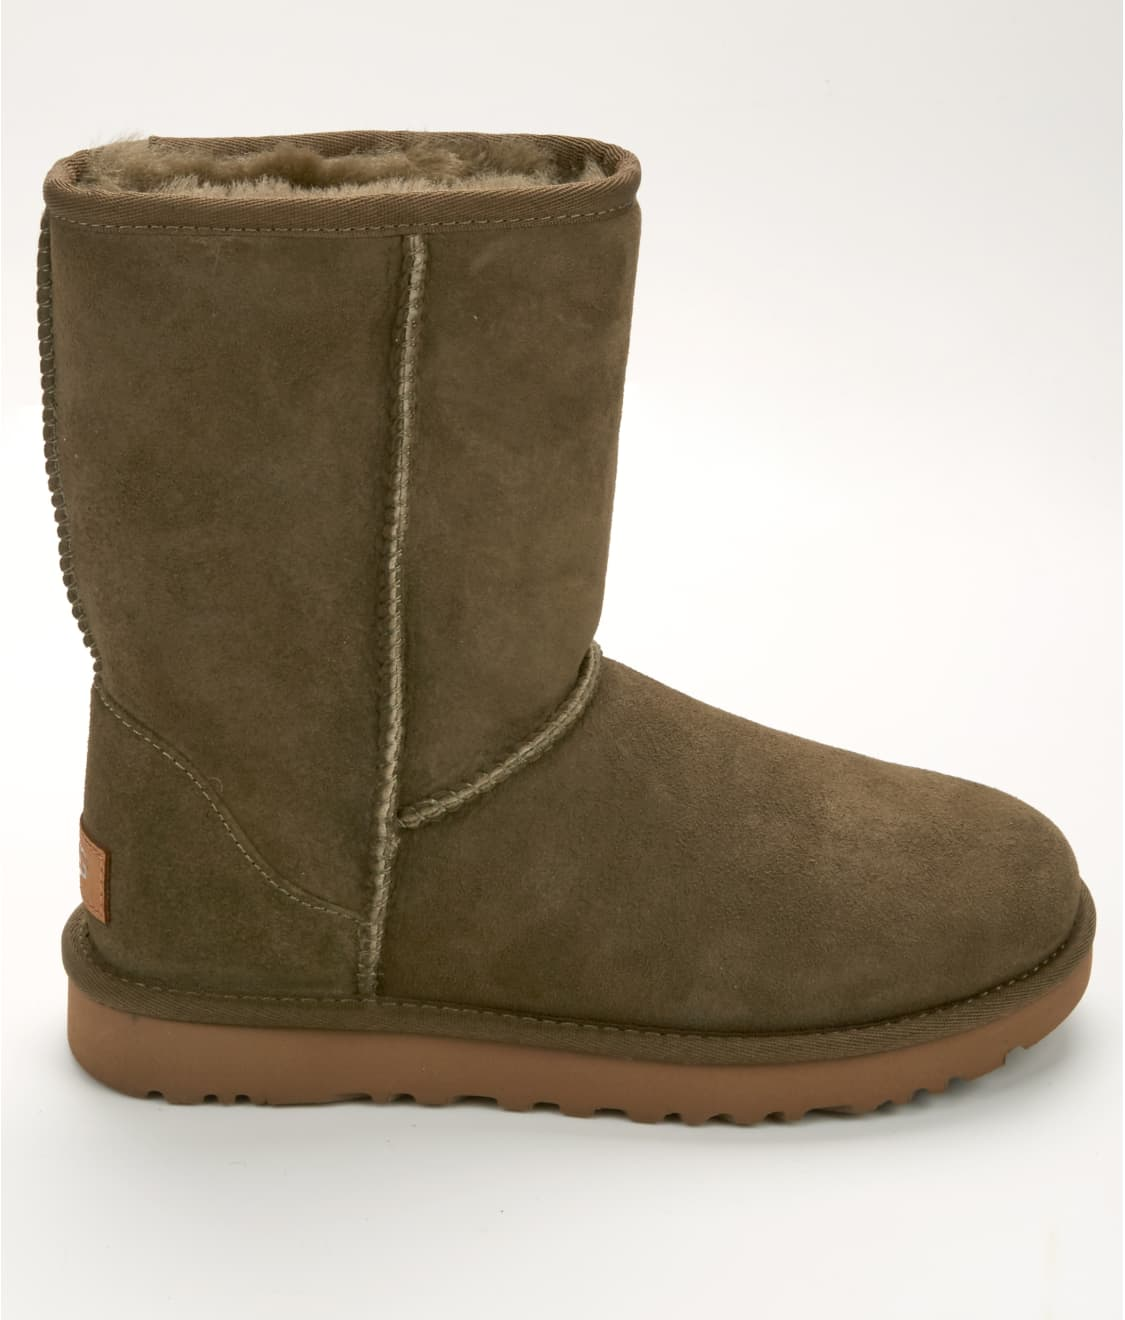 See Classic Short Boots II in Spruce